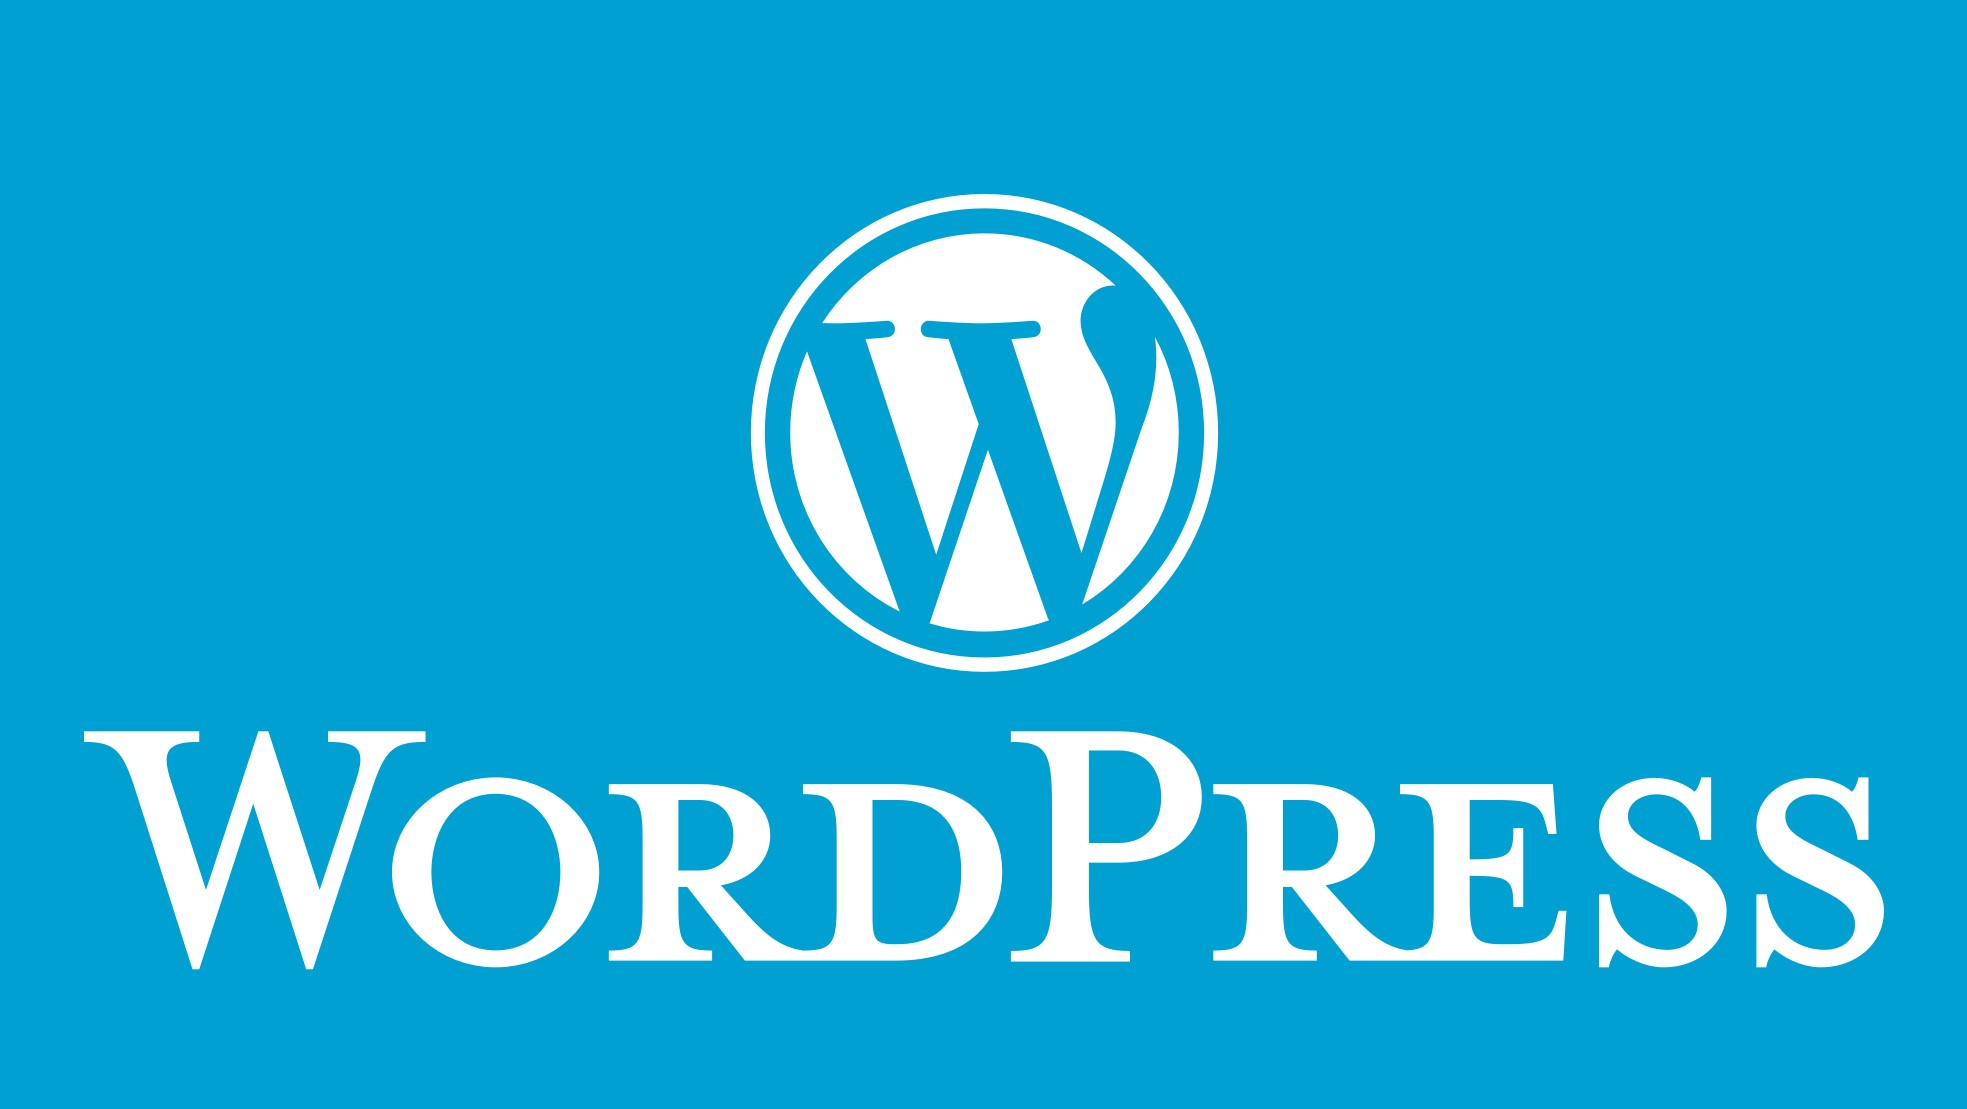 What is WordPress and why use WordPress?